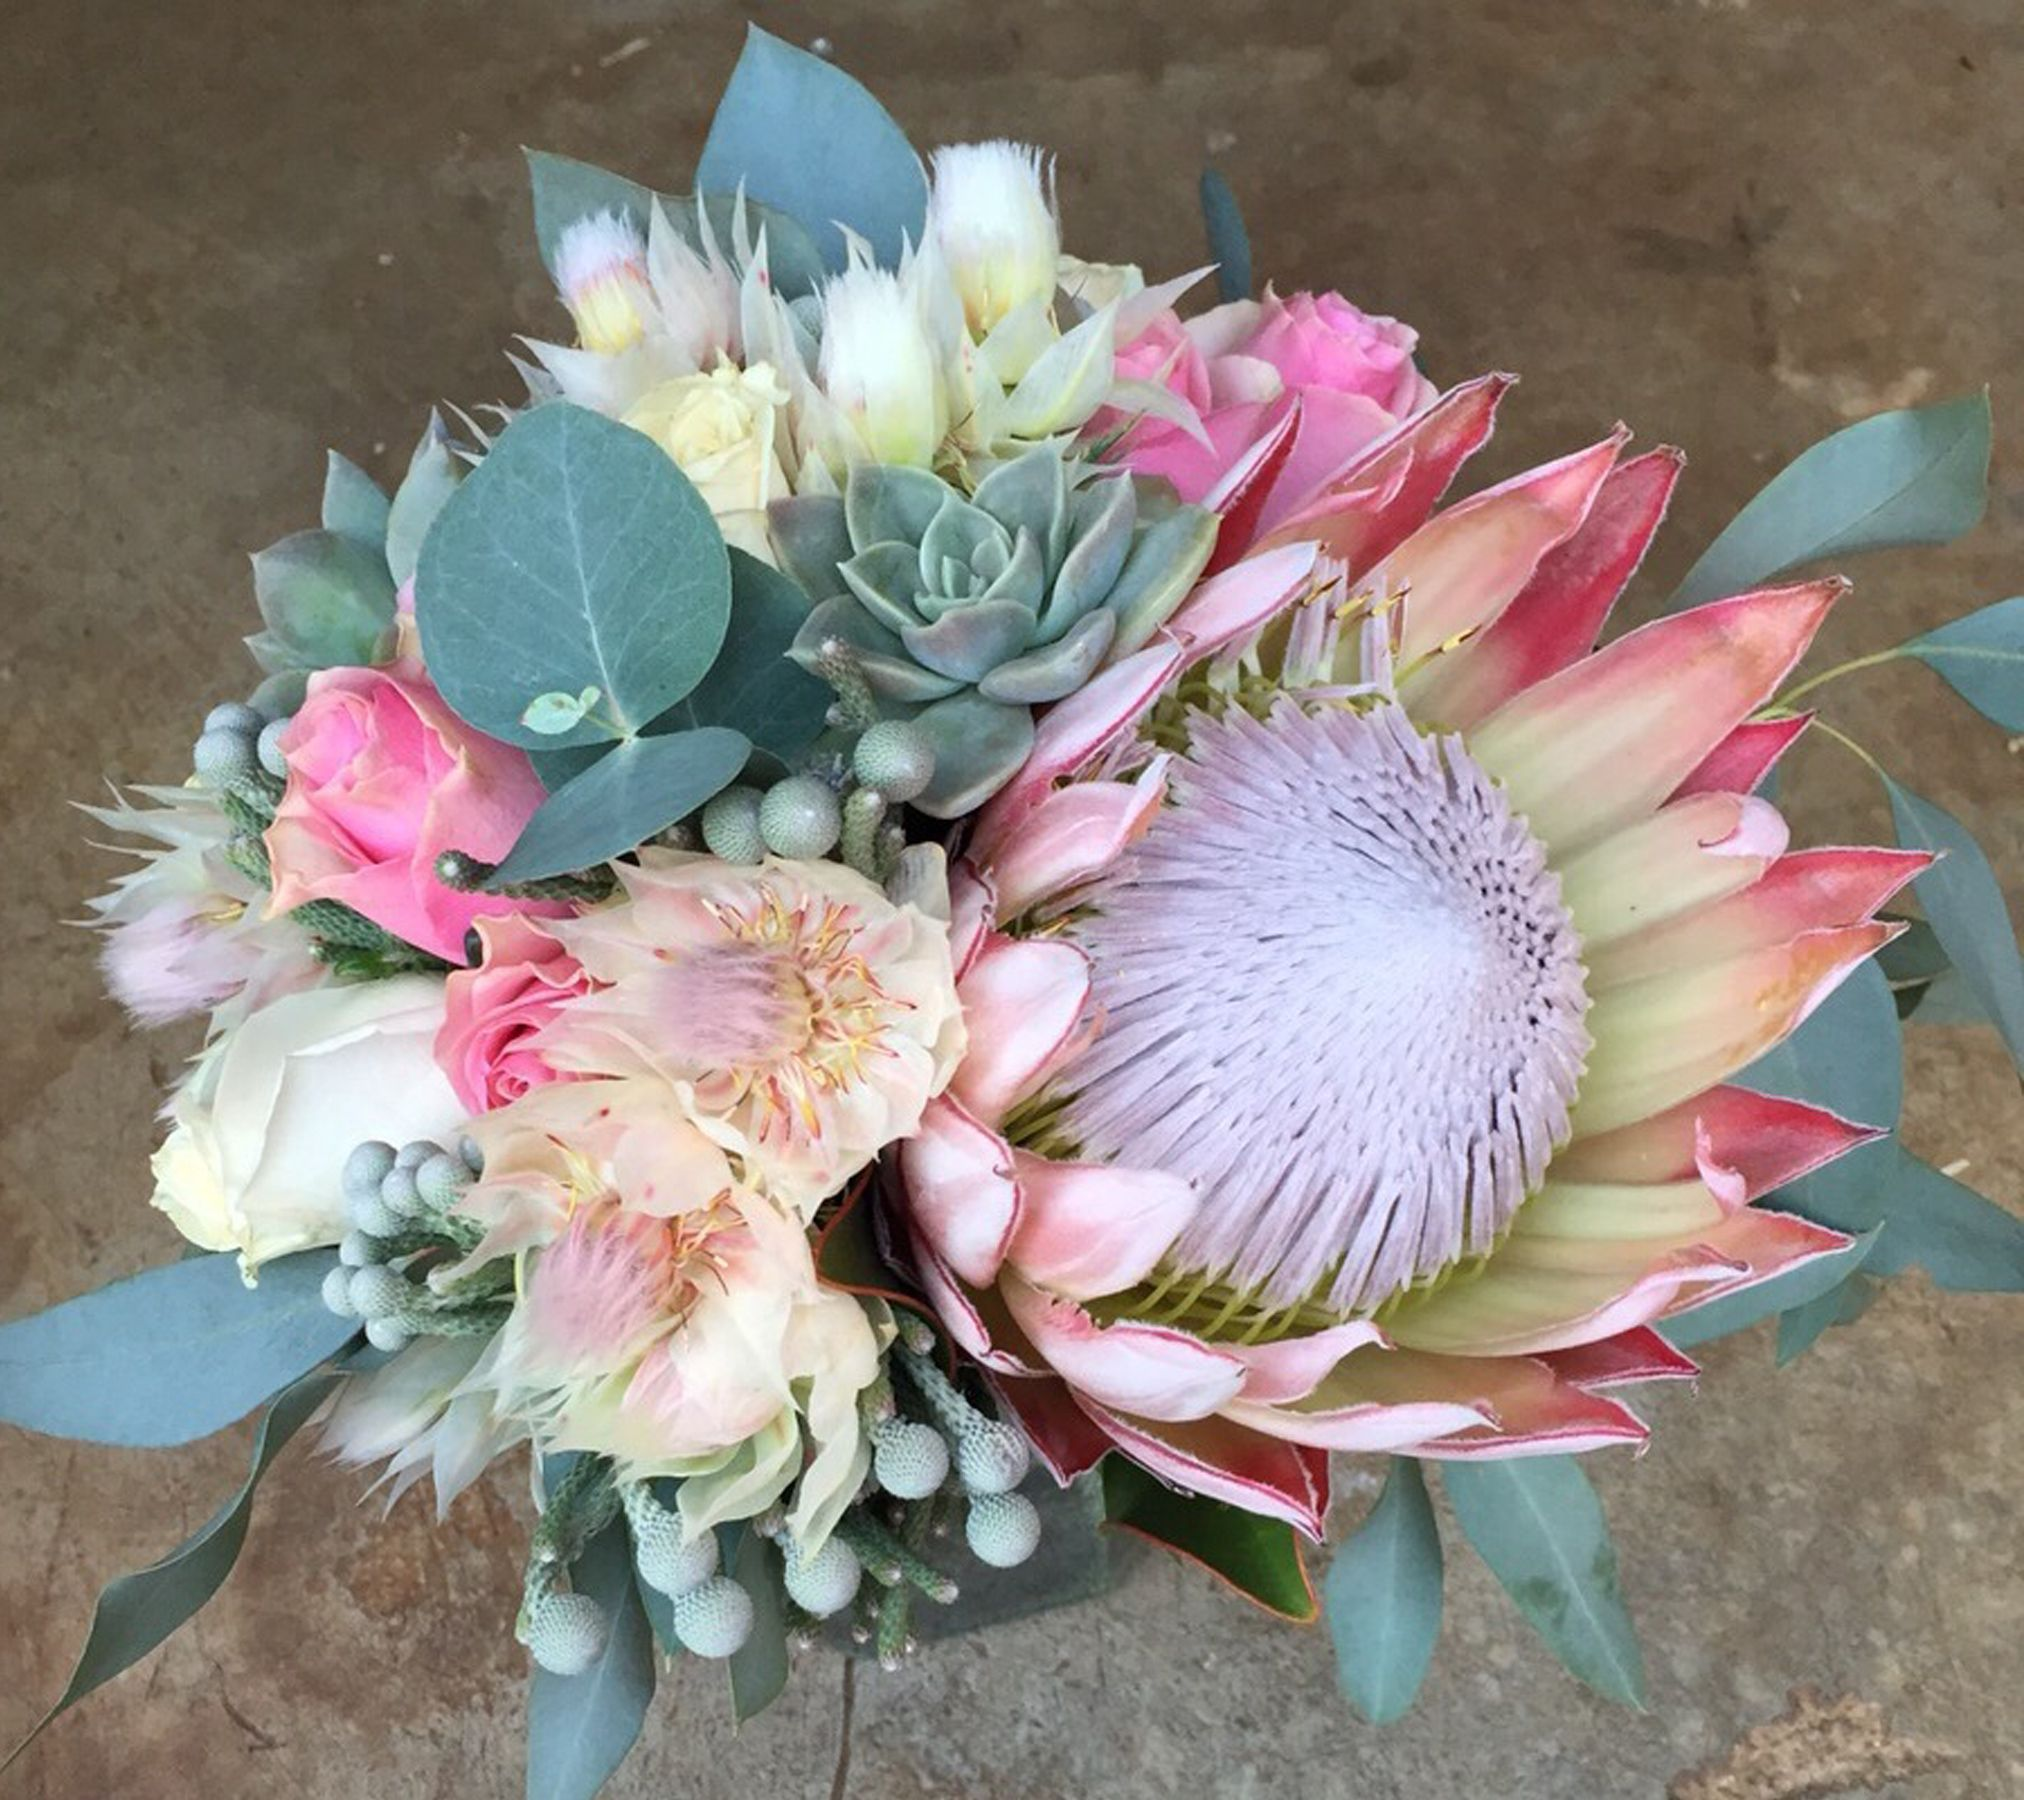 BLISS FLORAL CREATIONS Wedding flowers